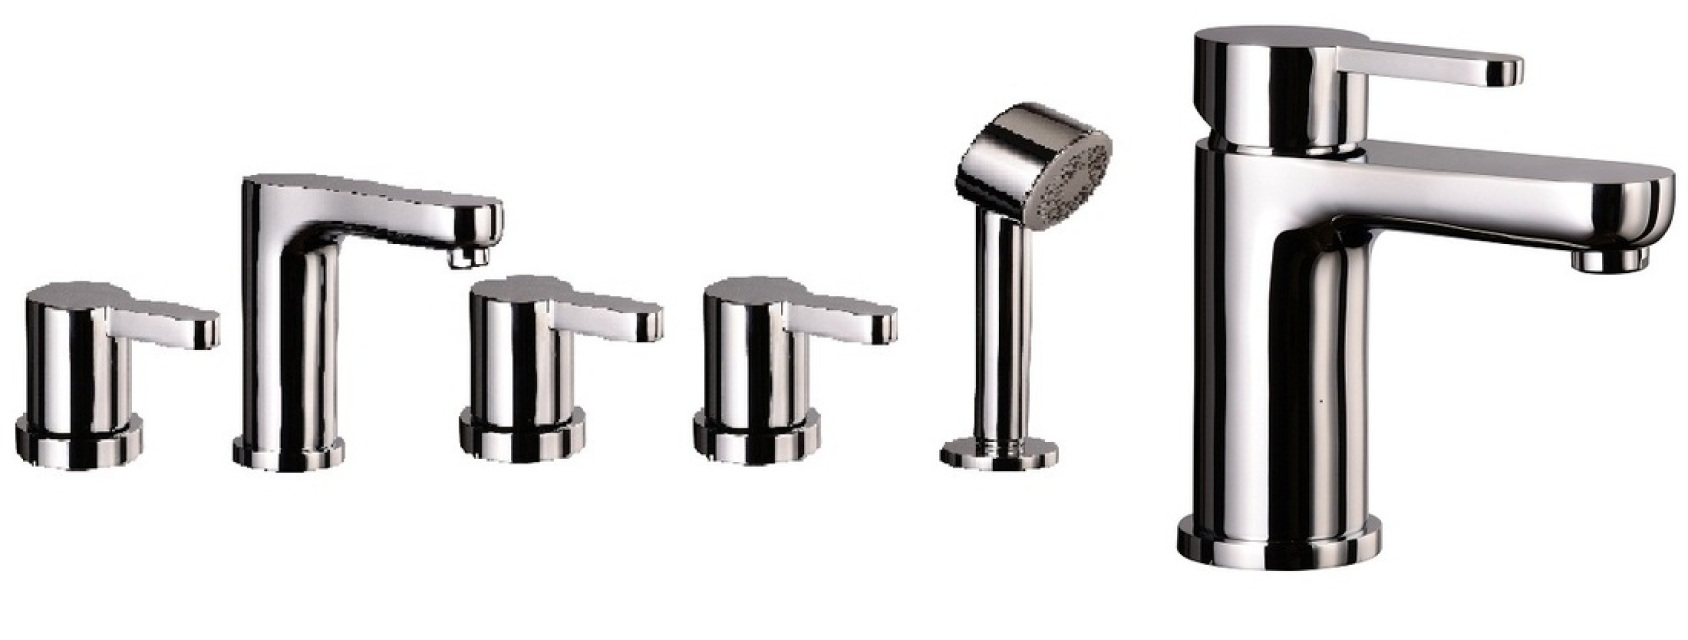 Mayfair Eion Basin & 5 Hole Bath Shower Mixer Tap Set